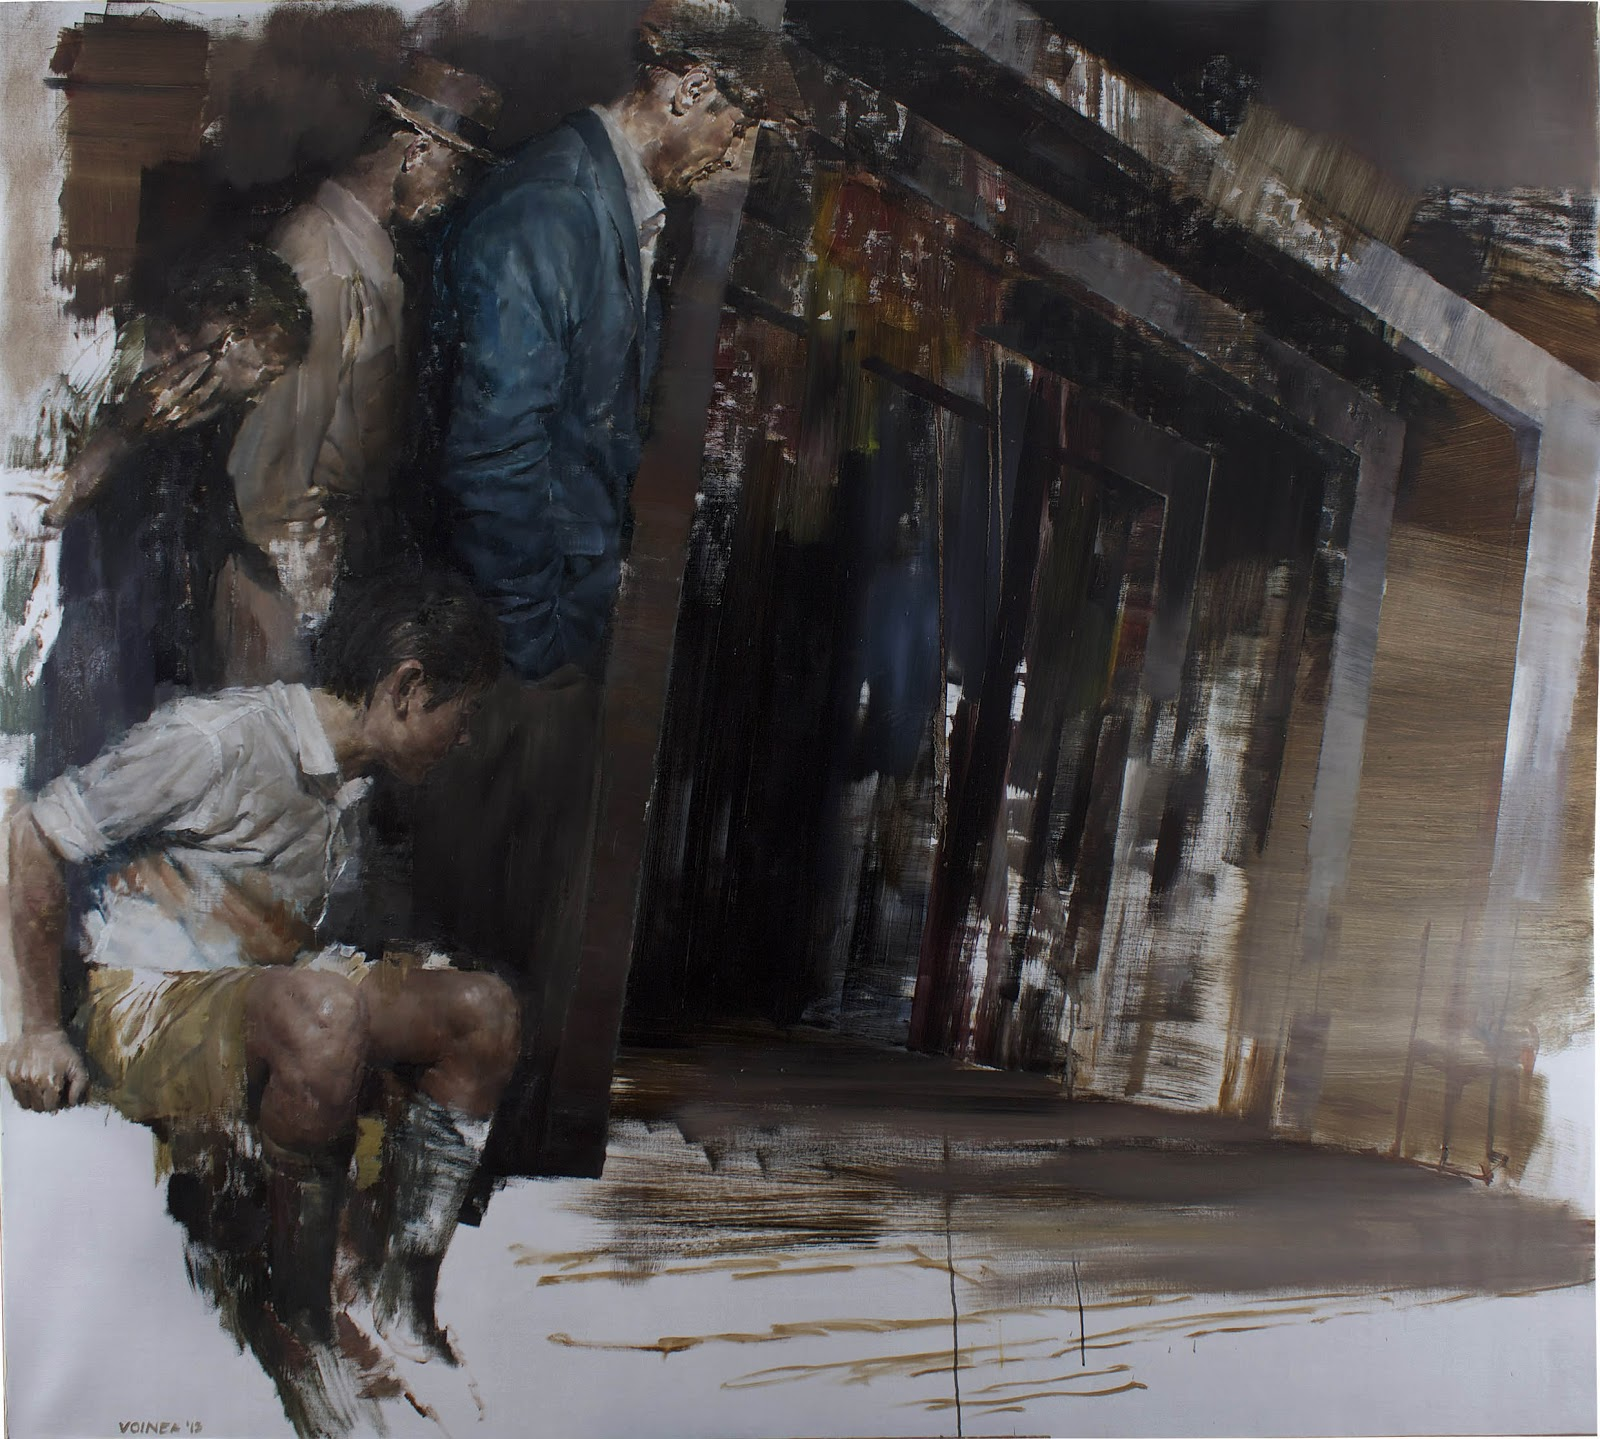 "Dan Voinea ""A Momentary Rise of Reason"" @ Beers.Lambert Contemporary, London: Parade180X200cm.jpg"